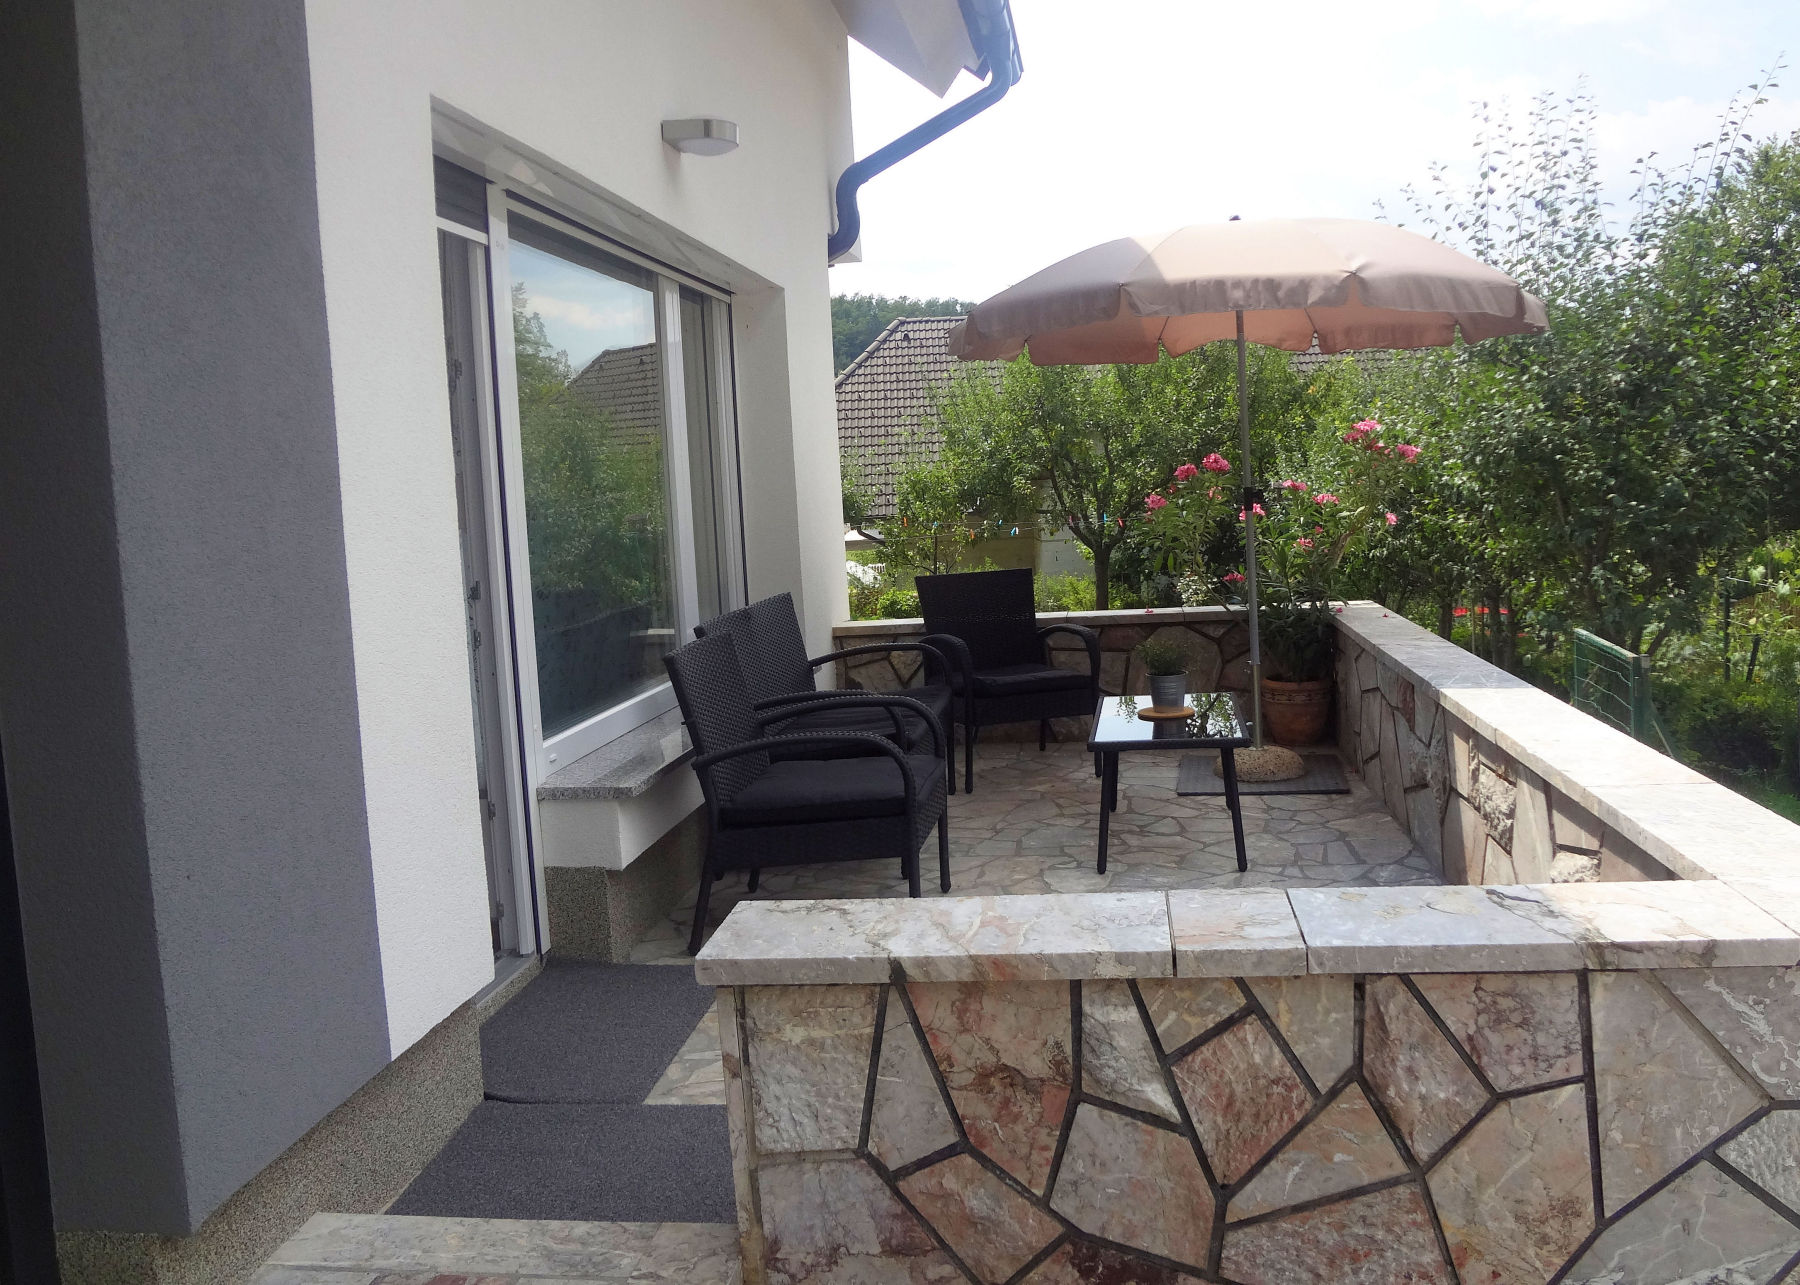 A terrace with garden furniture at Apartments Fine Stay in the Bled area of Slovenia